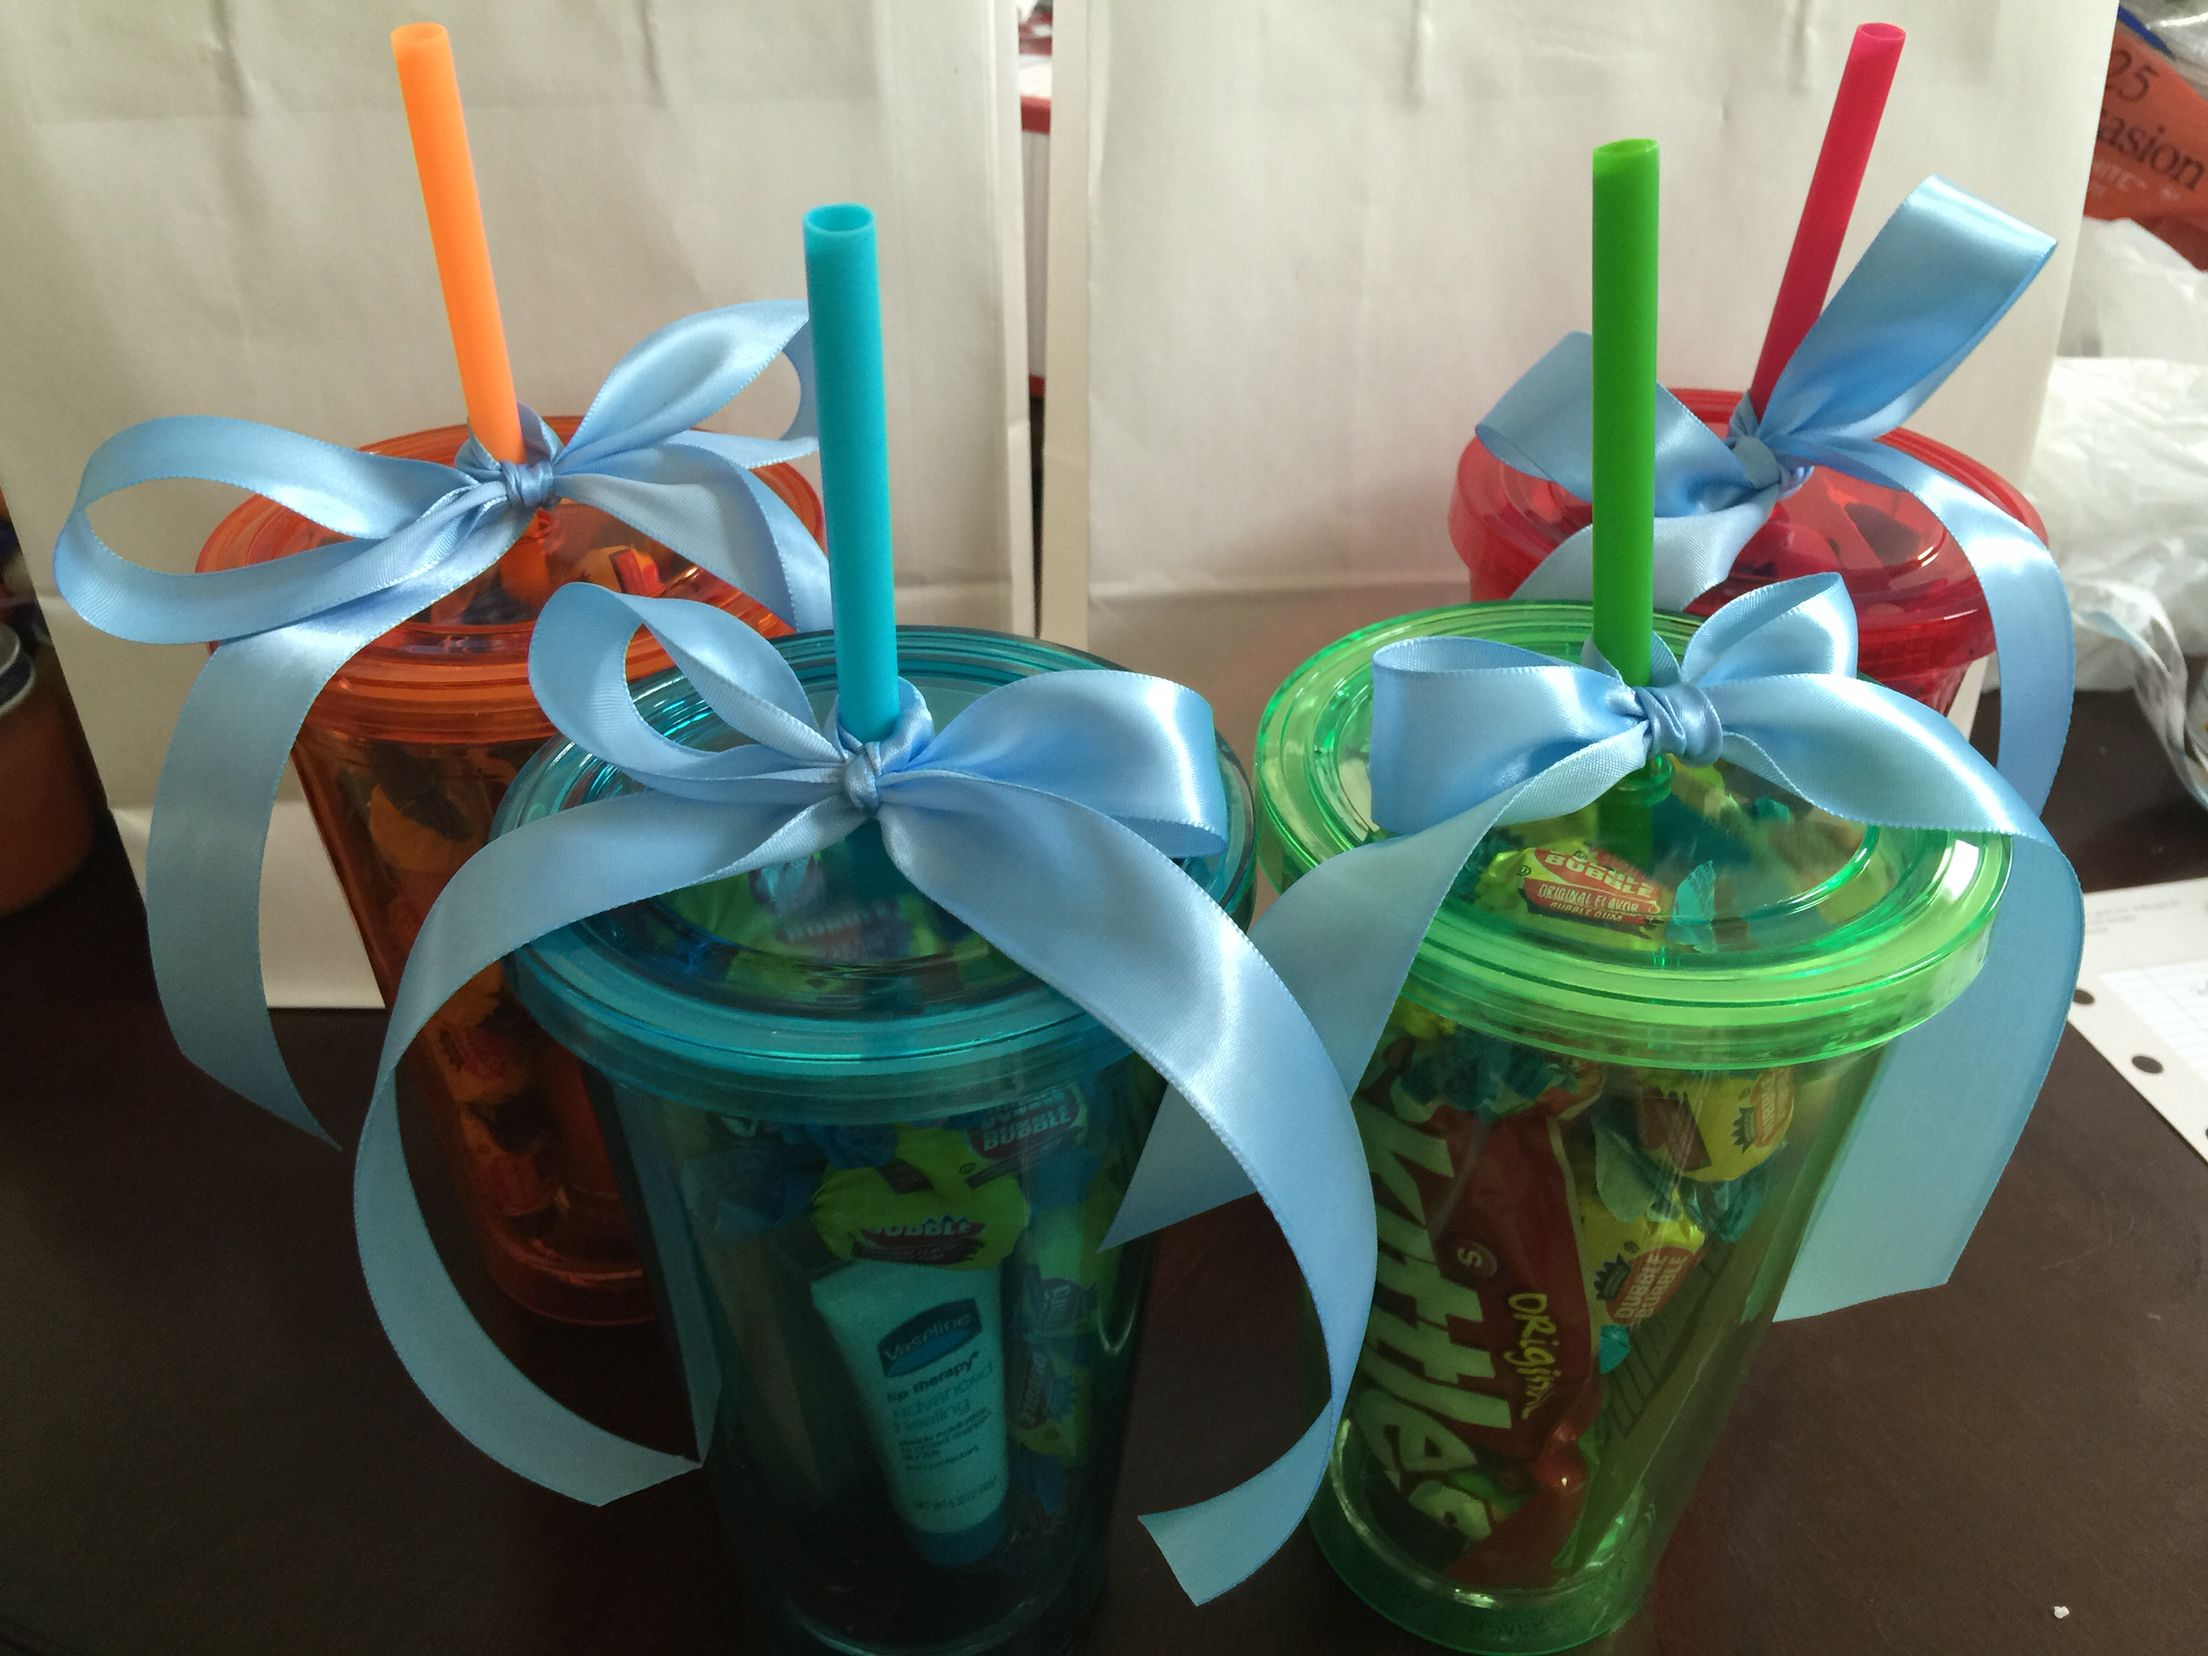 Unisex prizes for baby shower games